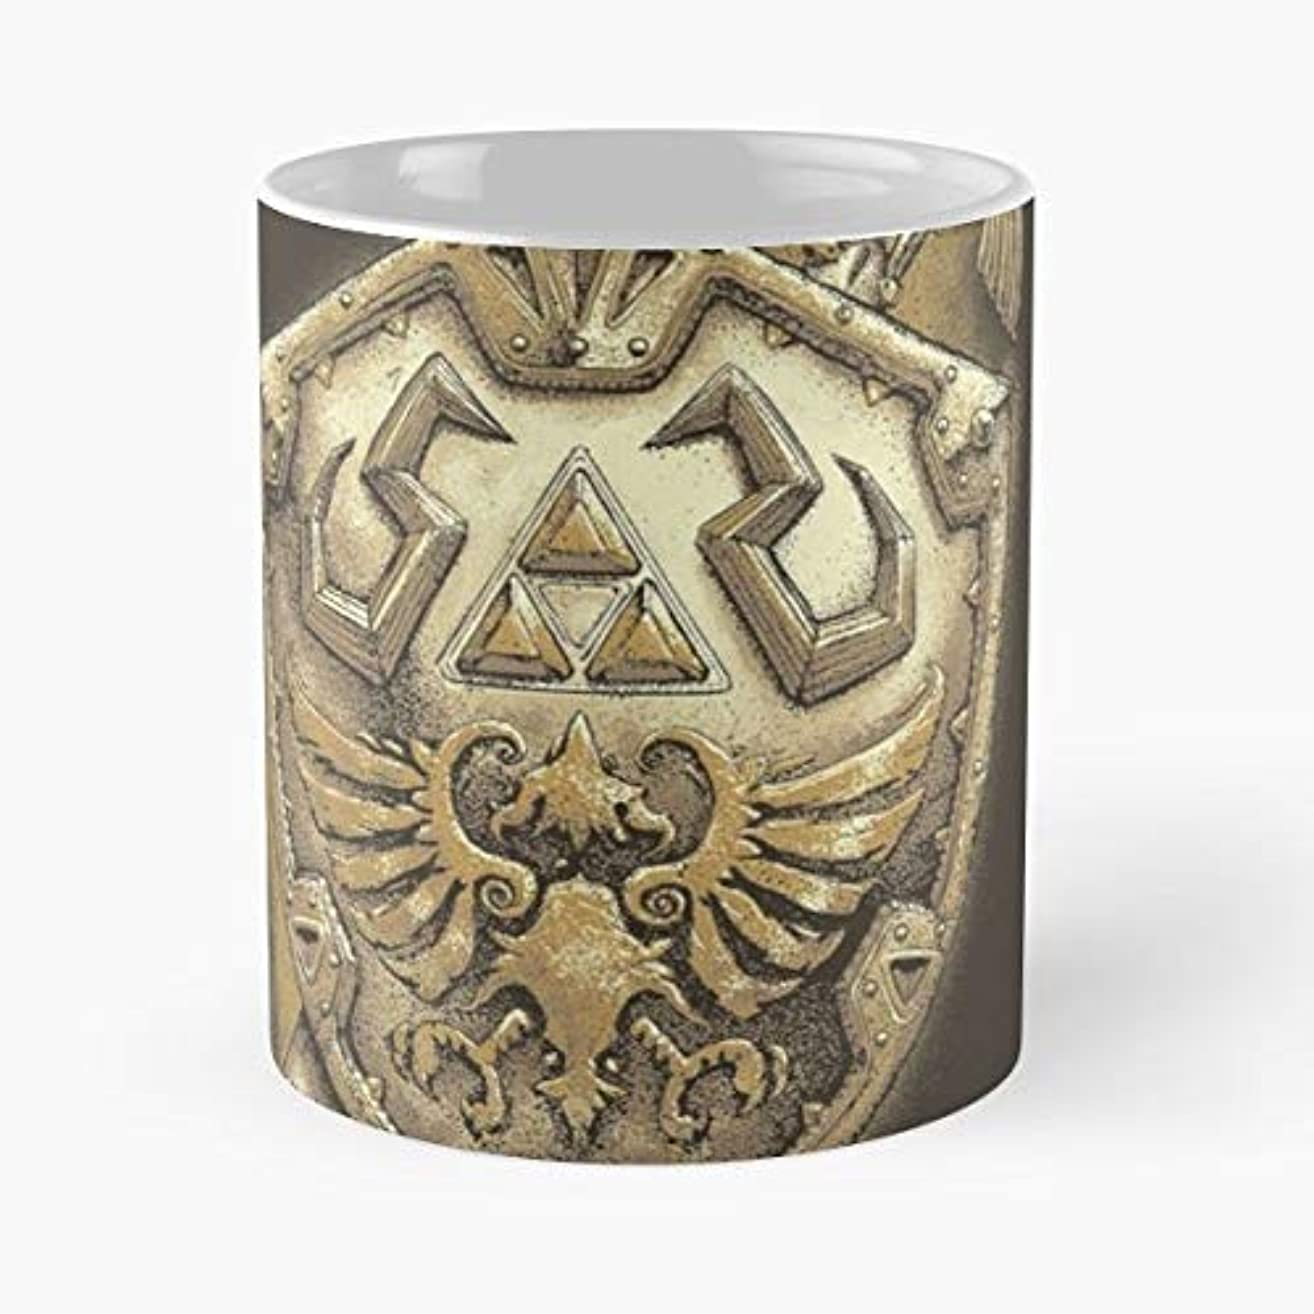 Games Zelda Sword Link Funny Christmas Day Mug Gifts Ideas For Mom - Great Ceramic Coffee Tea Cup